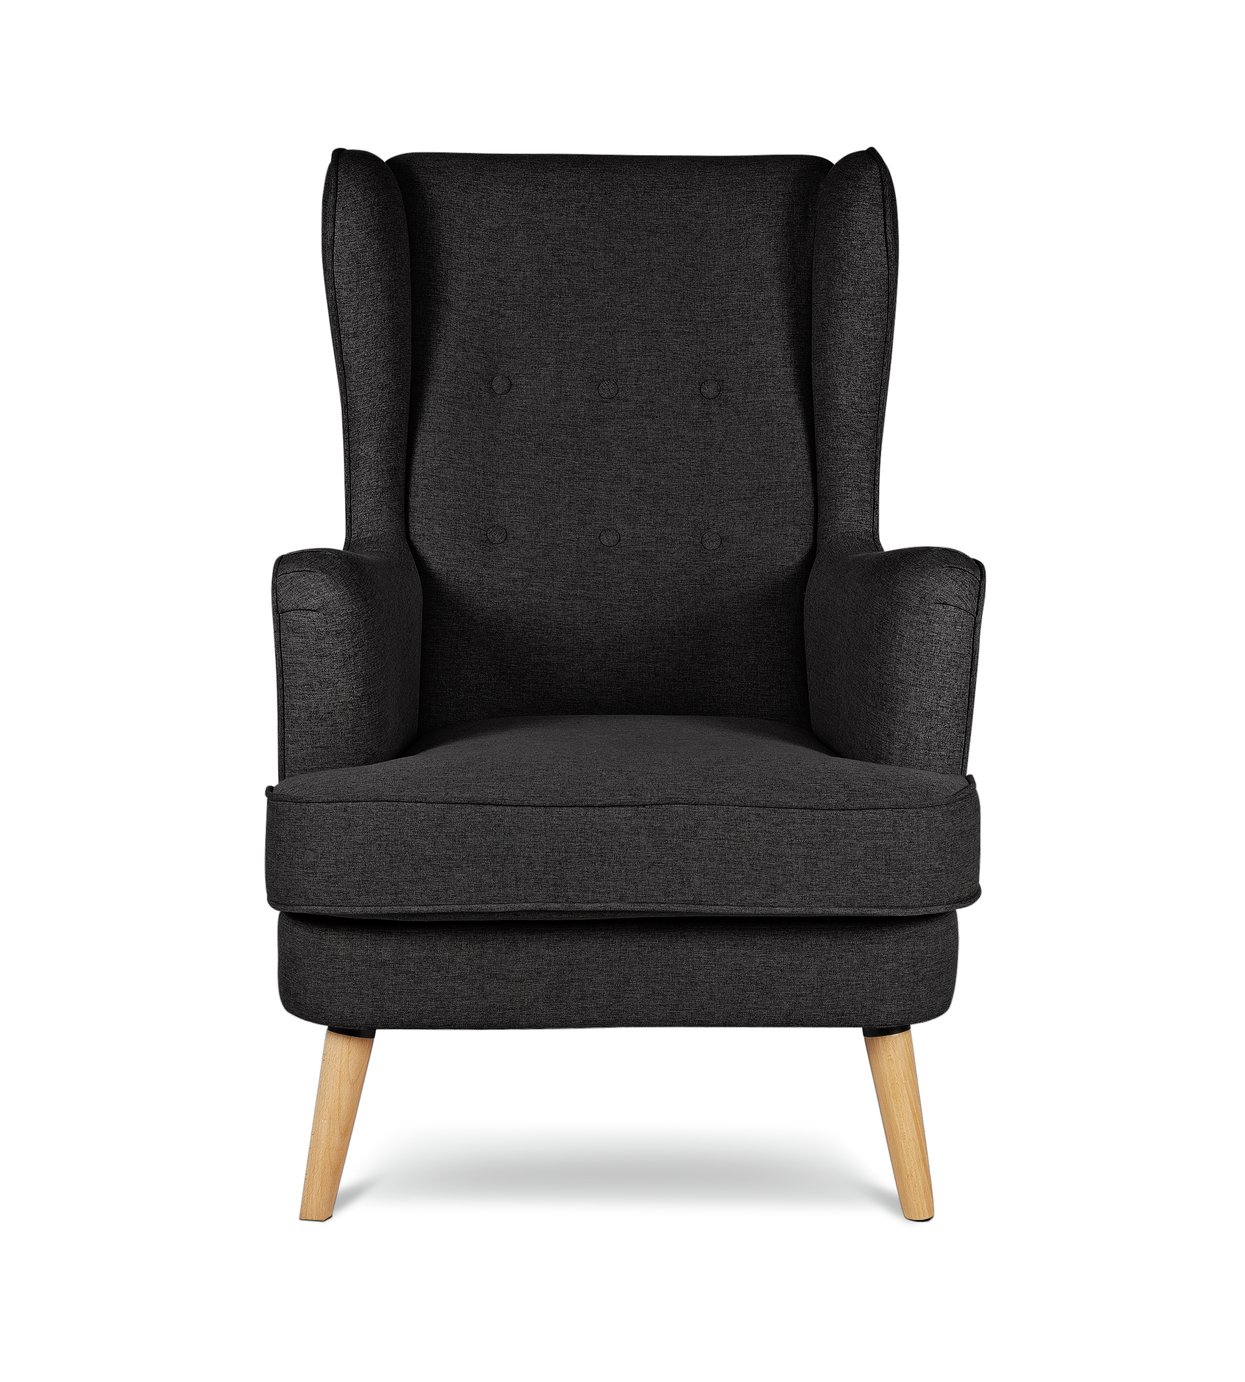 Argos Home Callie Fabric Wingback Chair - Charcoal